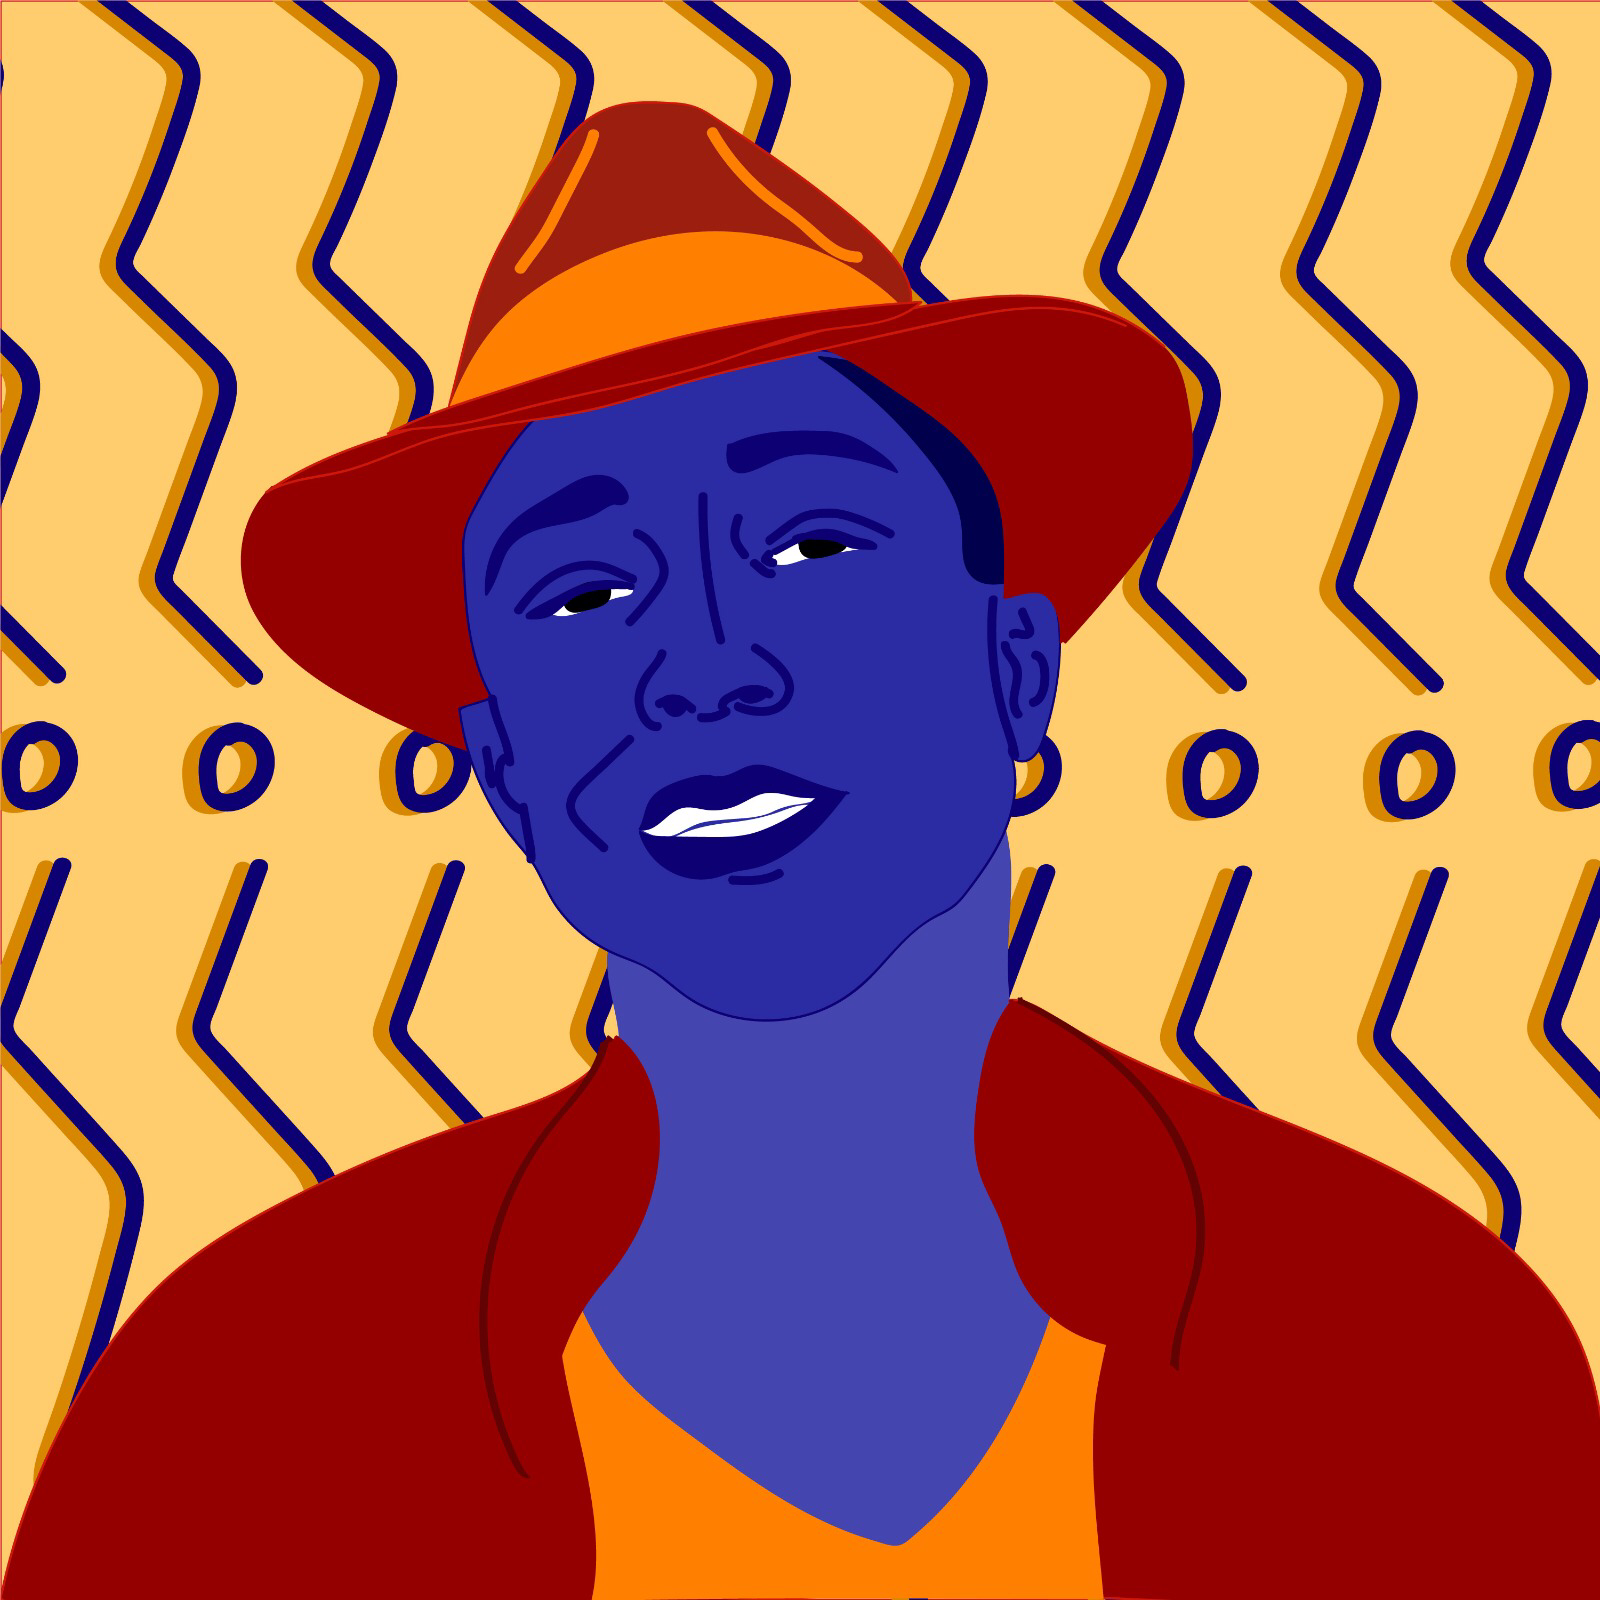 Pharrell Williams illustrated by Rita Azar for 360 MAGAZINE